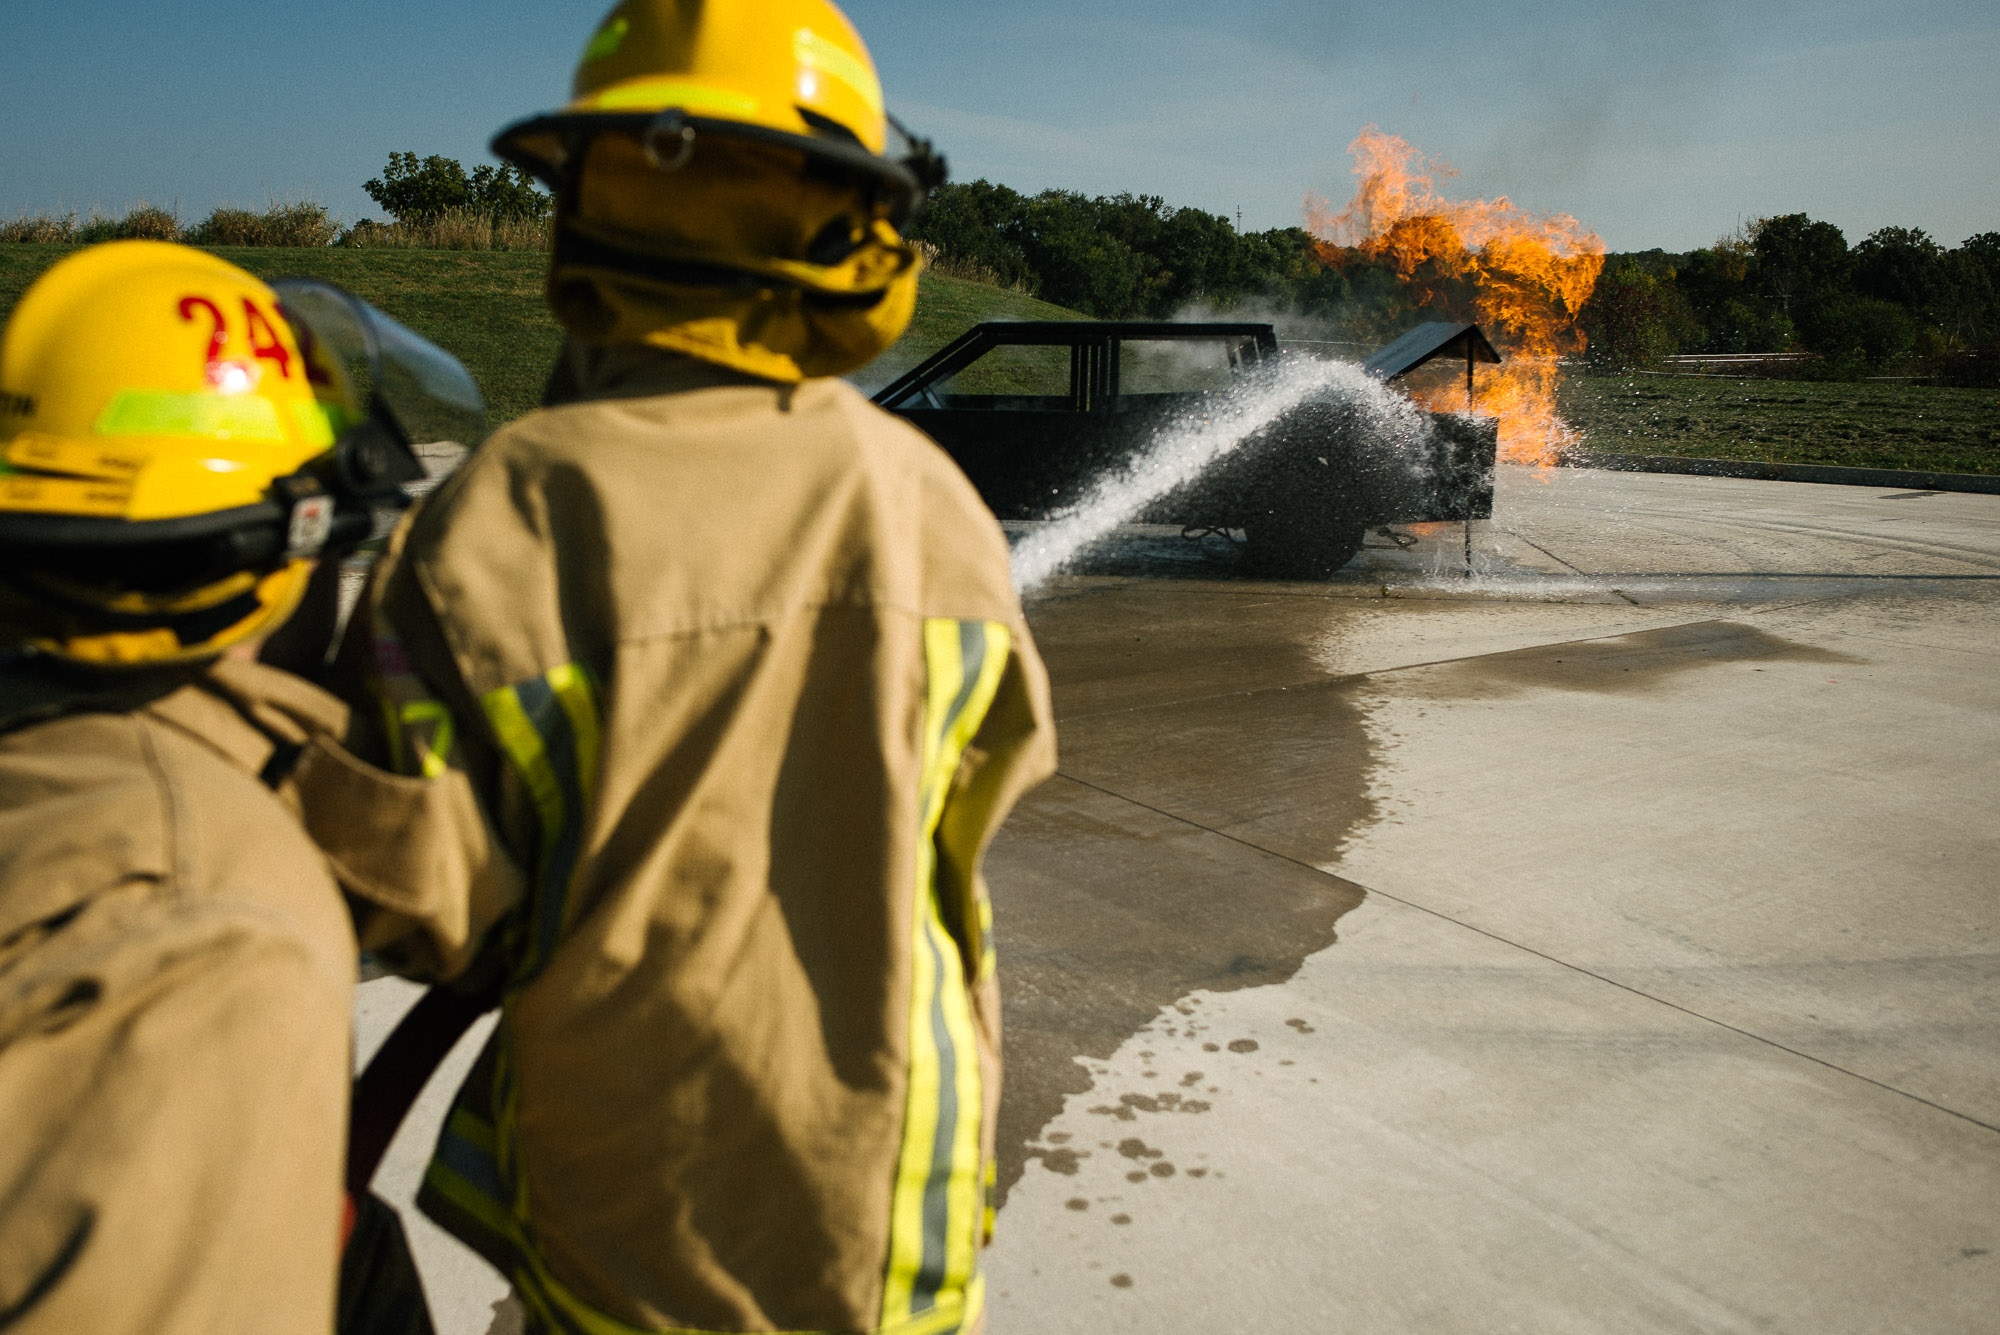 boys in fireman gear put out a mock fire on a training car